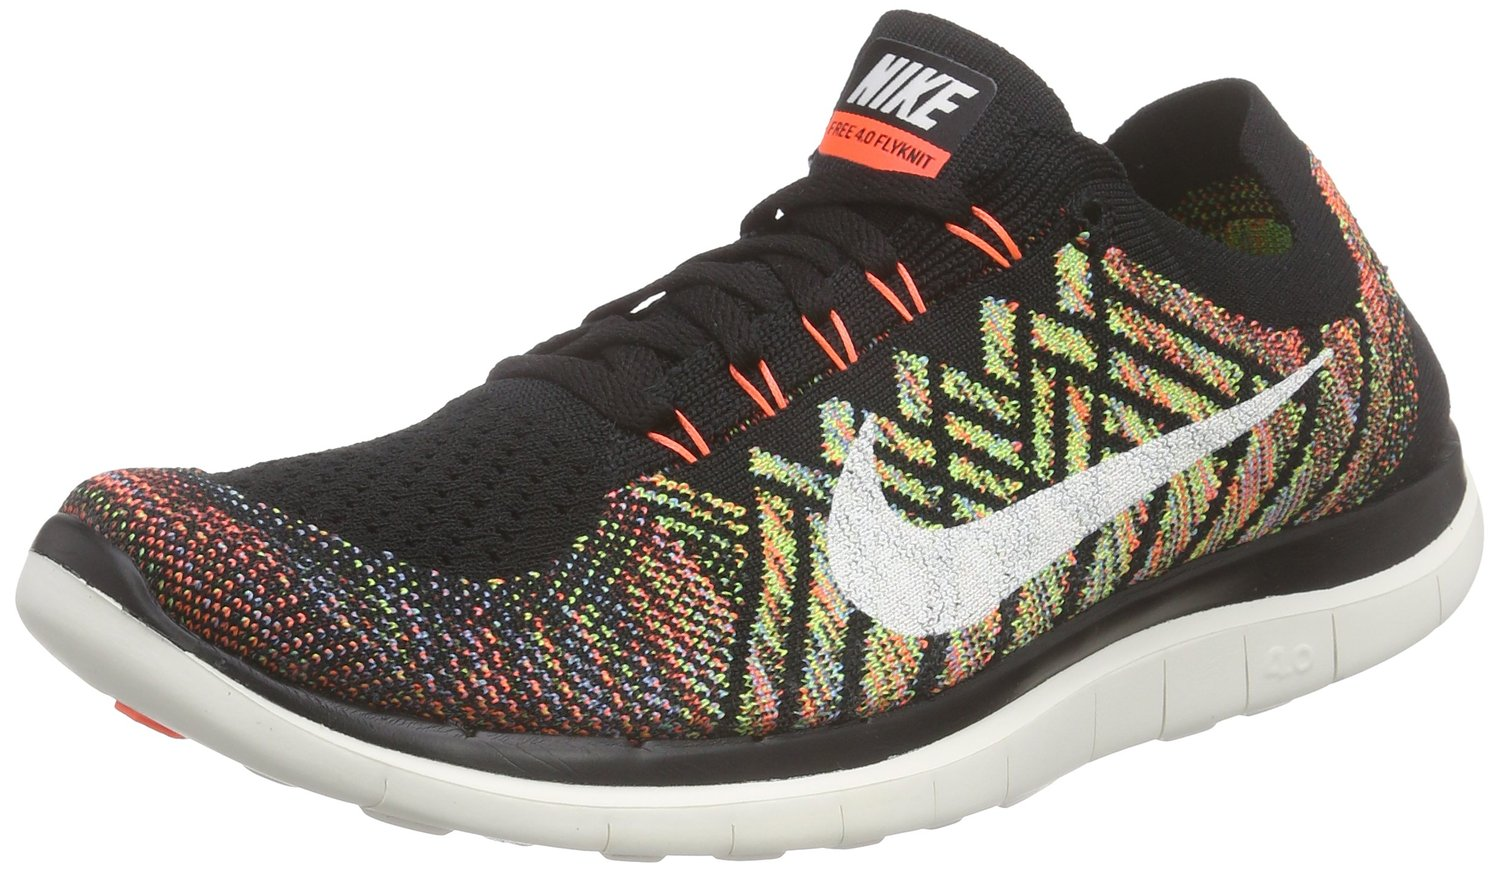 newest 4fe93 2acb4 ... new zealand nike nike free 4.0 flyknit men black sail hyper orange  university blue running shoes